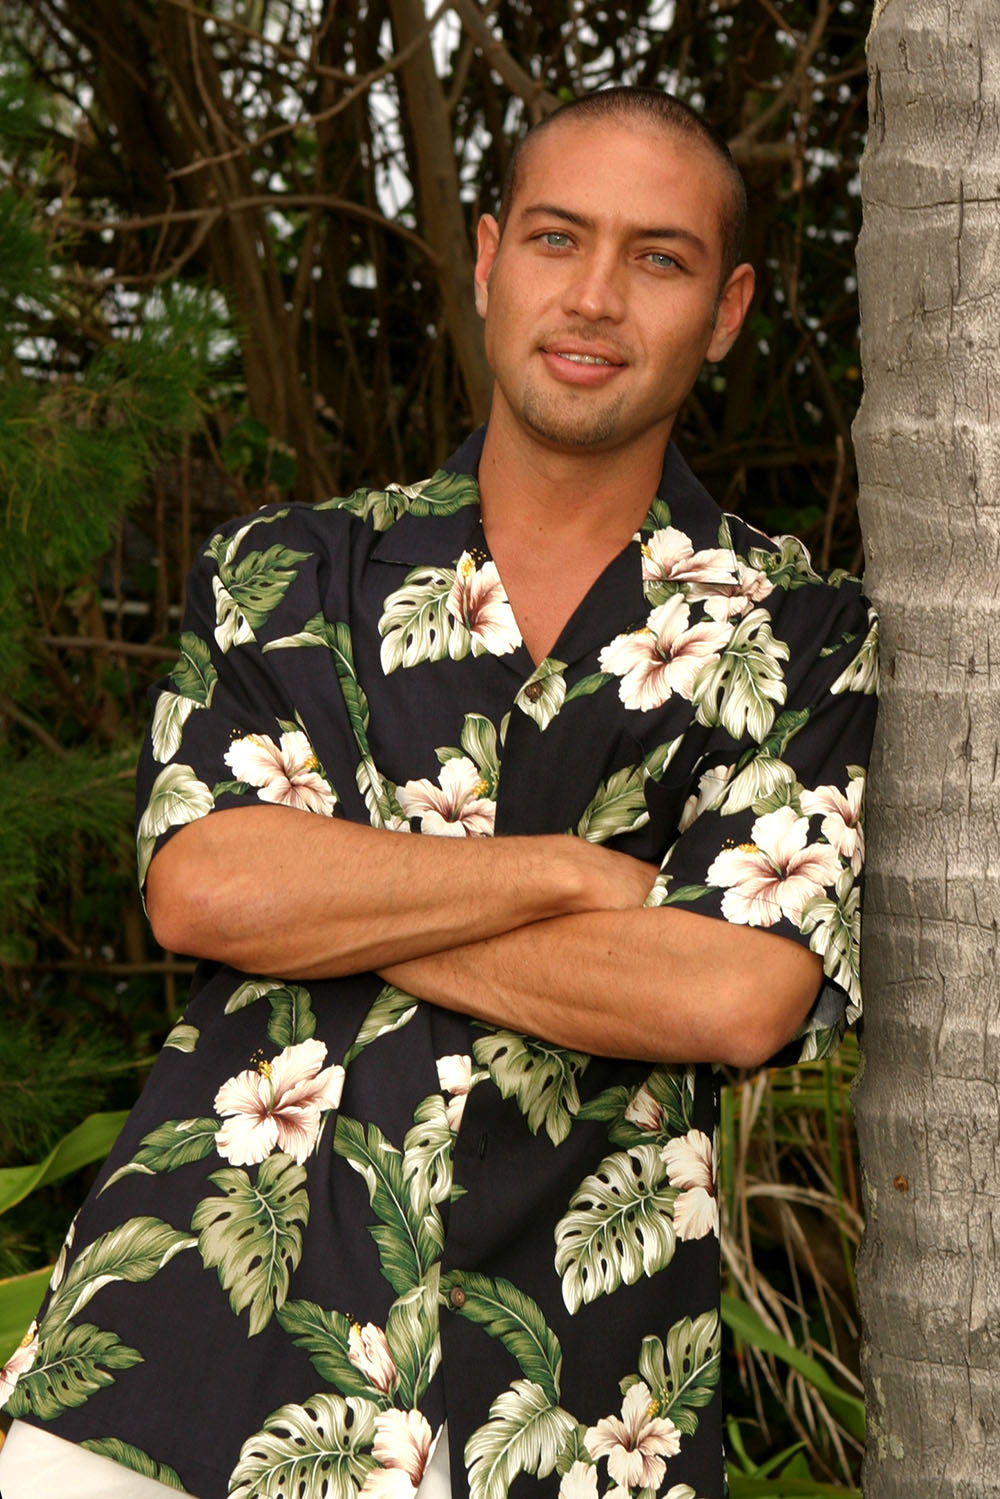 Jonah in a black rayon Aloha shirt